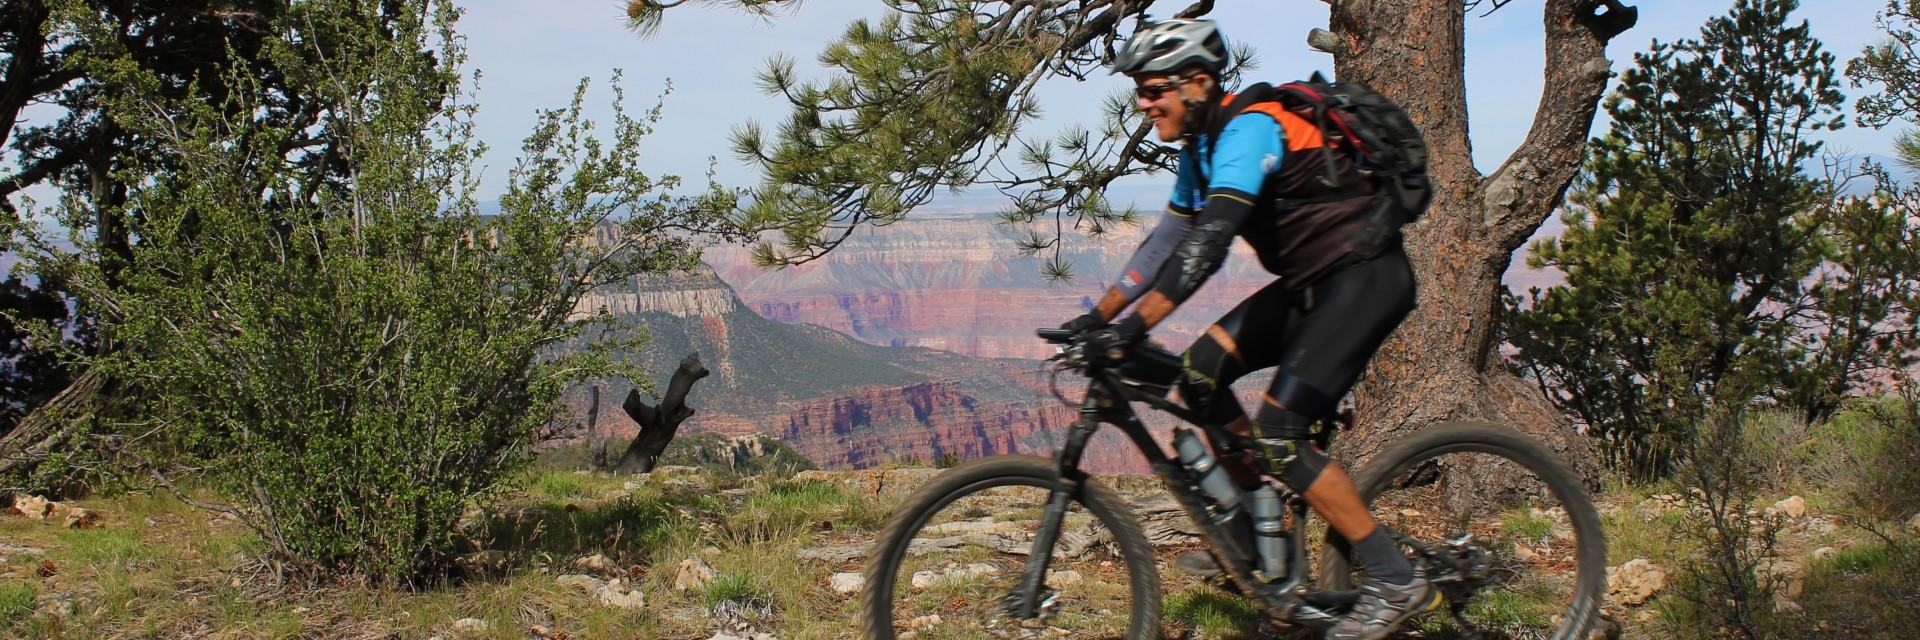 A mountain biker returns to camp at Locust Point on the Rainbow Rim Trail during a 5-day guided tour along the North Rim of the Grand Canyon